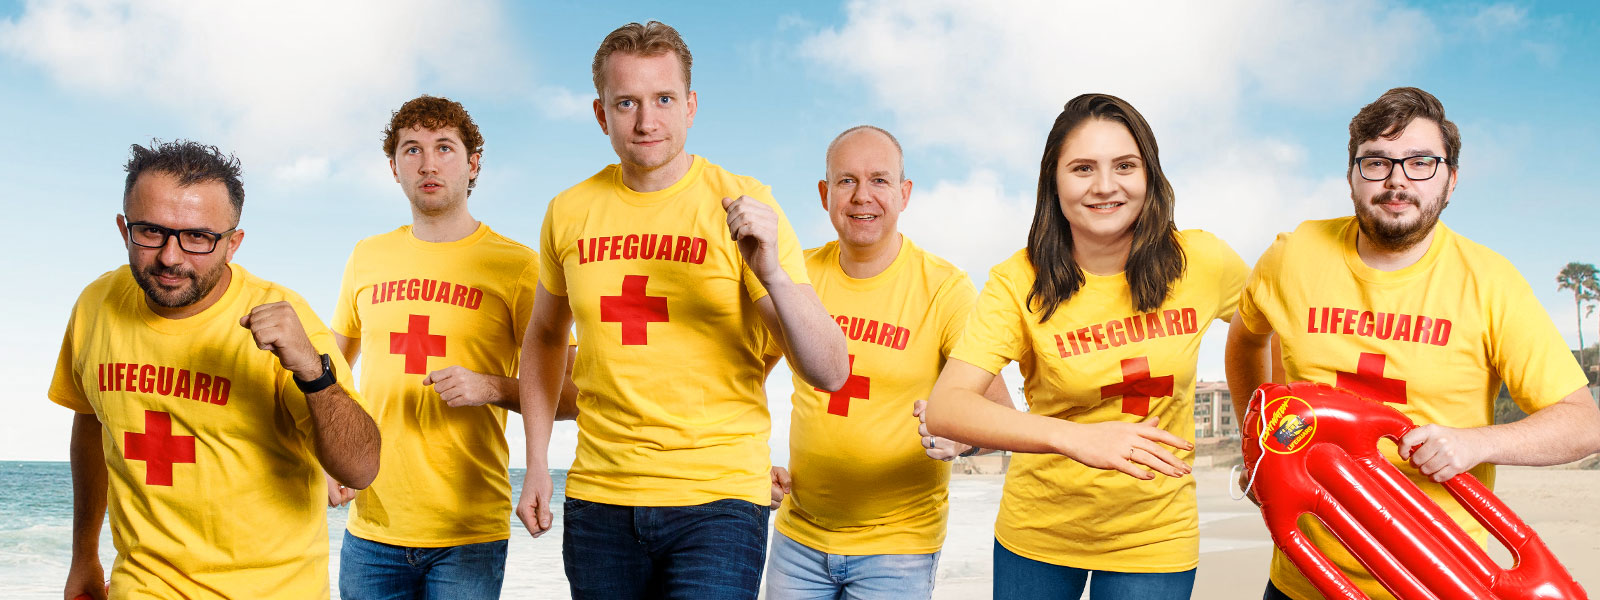 Lifeguards to the rescue!